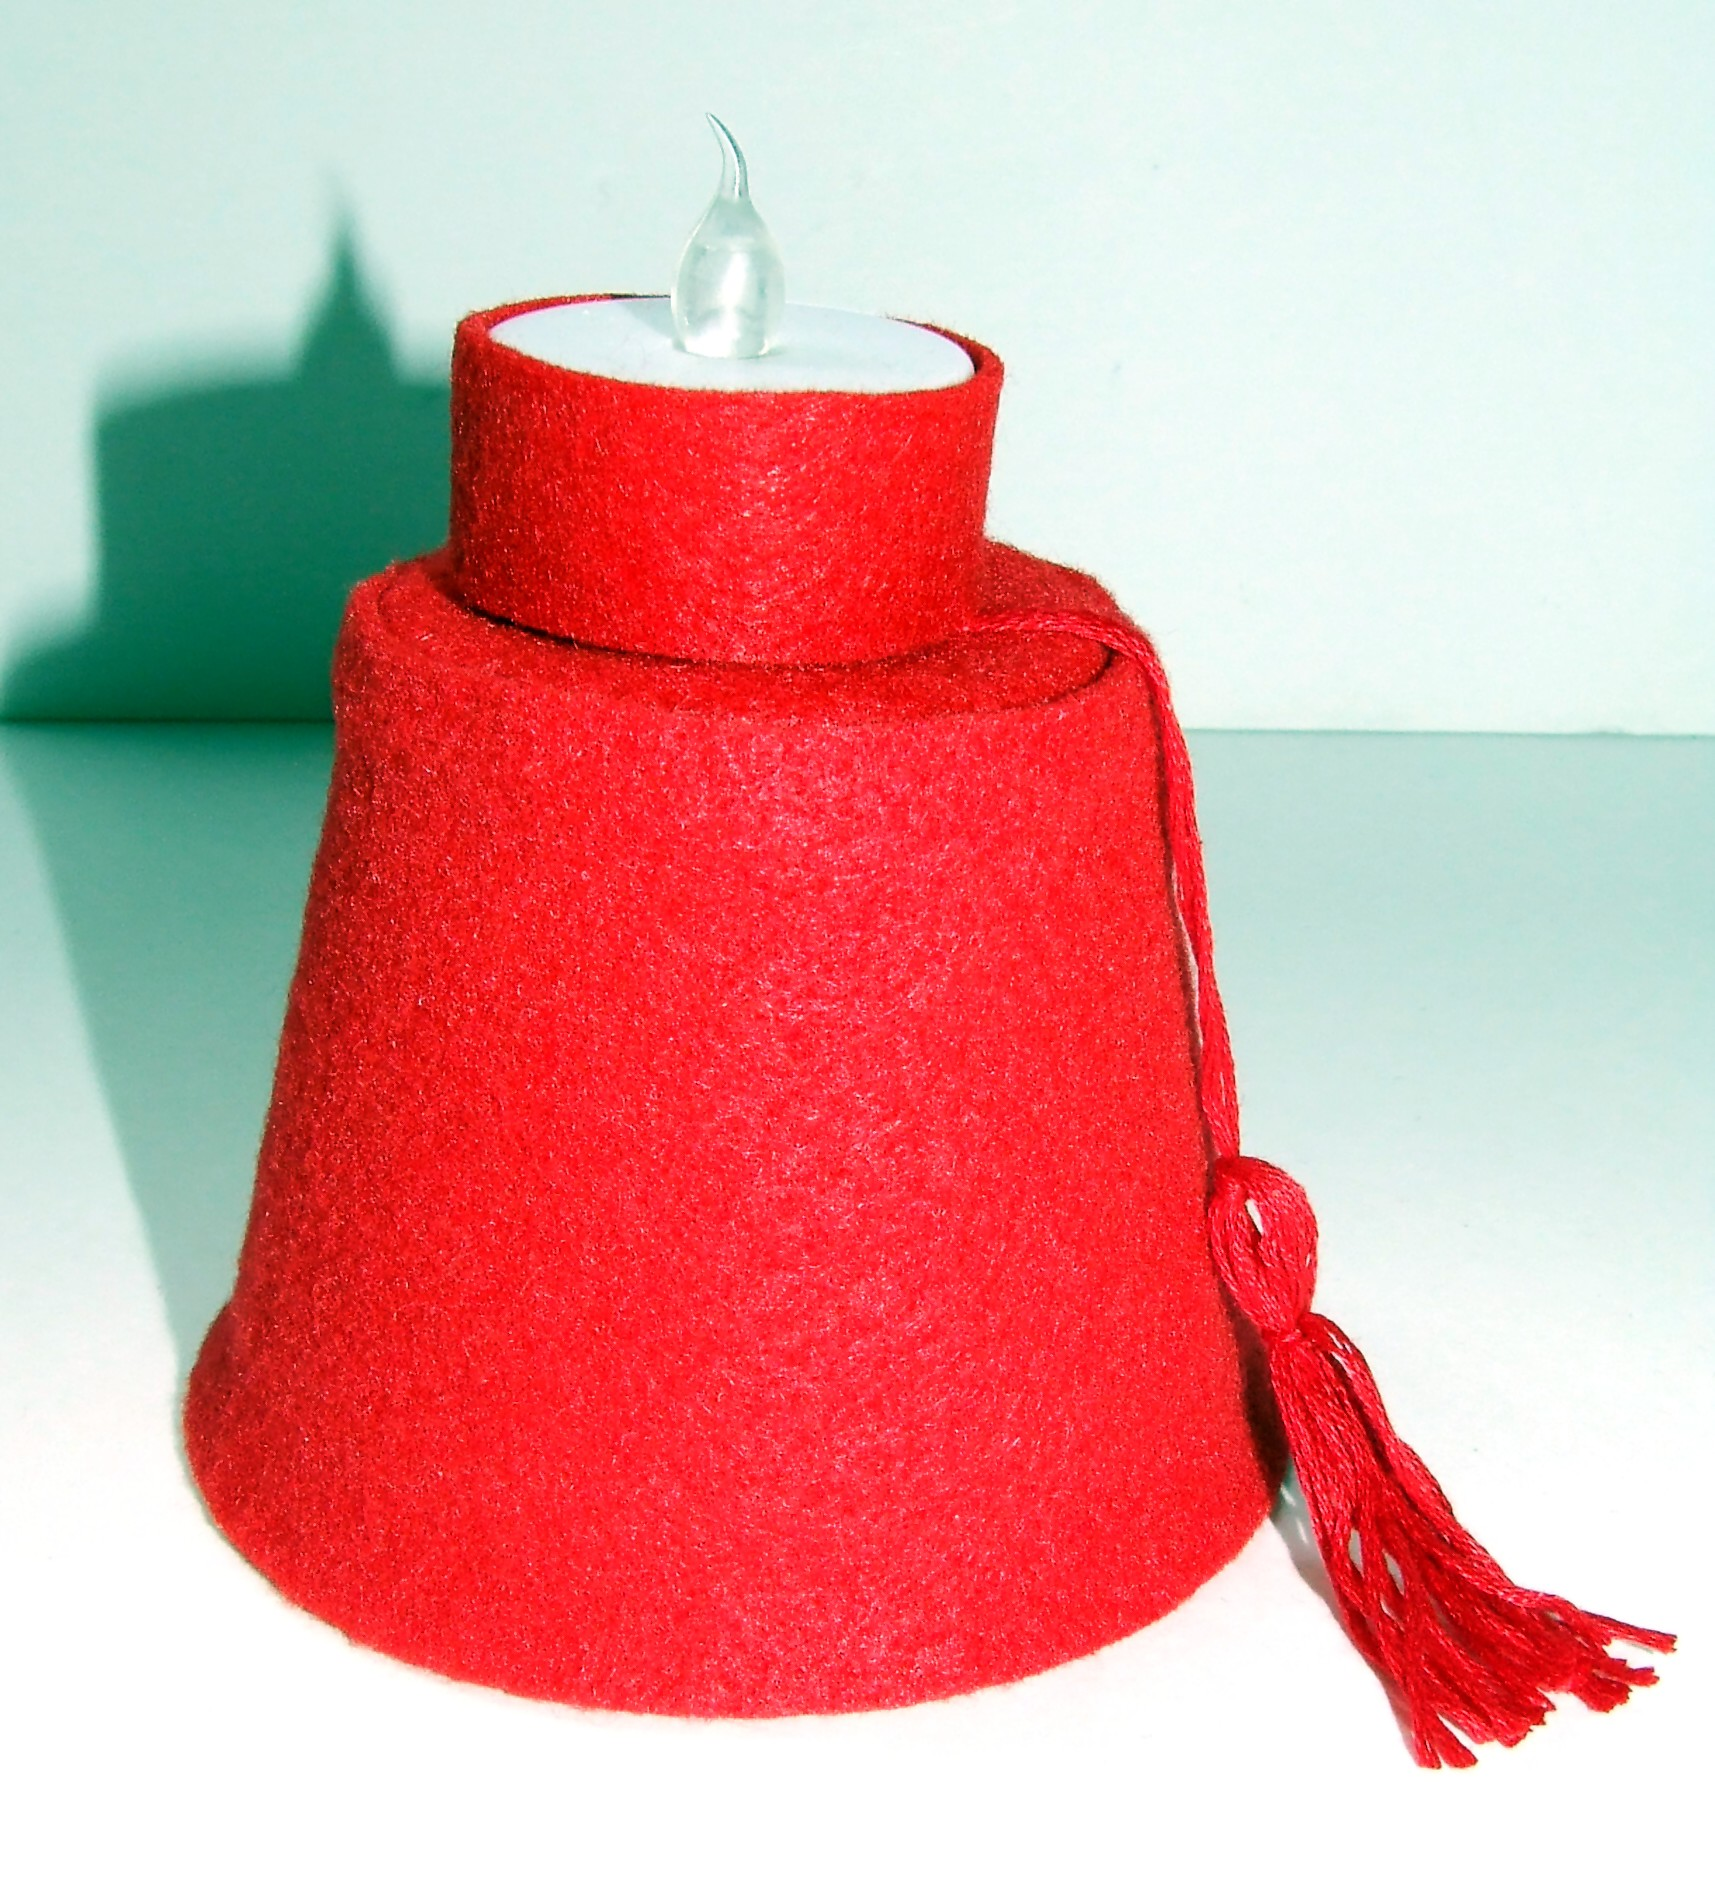 Fez Candle holders